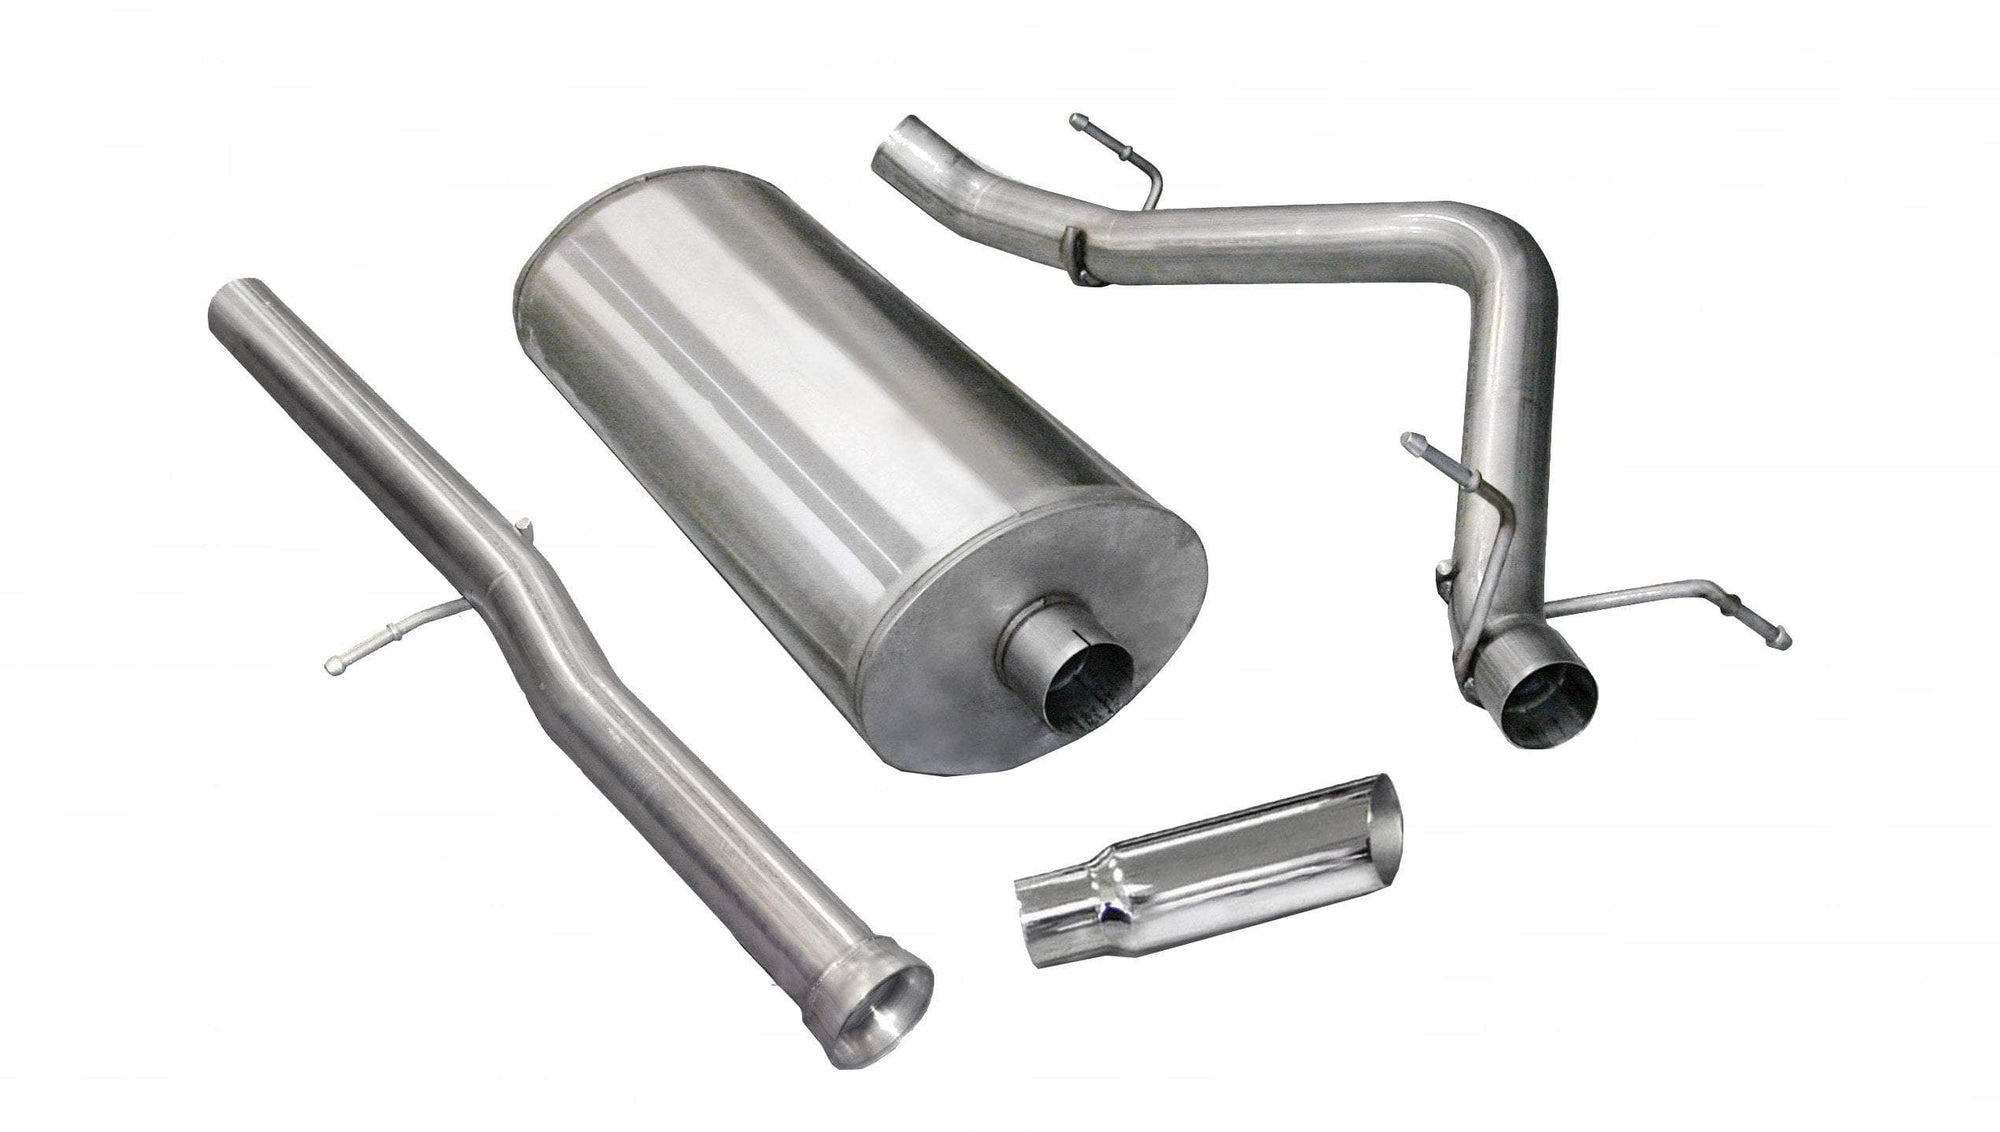 "dB Cat-Back Exhaust Polished / Sport / Single Side - Single 4in 2011-2013 Chevrolet Silverado, GMC Sierra, Denali, 6.2L V8, Crew Cab Short Bed, 3.0"" Catback Exhaust System with 4.0"" Tip (24523) Sport Sound Level"